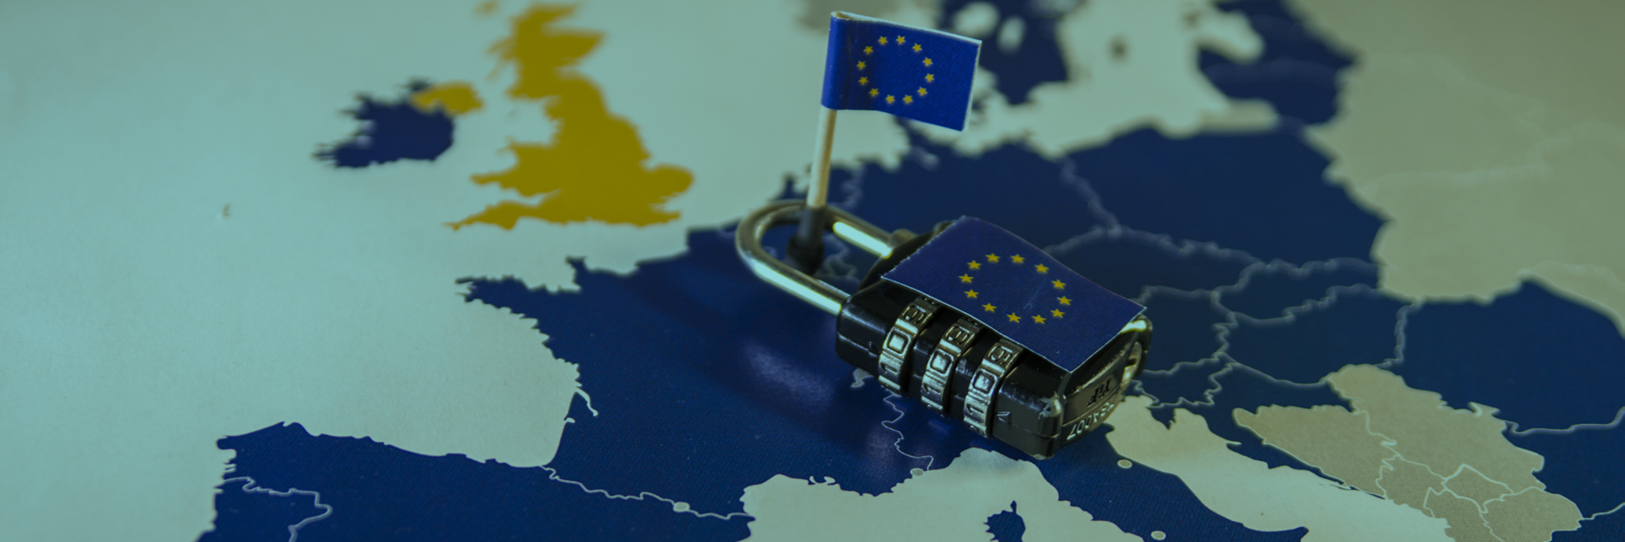 Don't Be GDPR Complacent, It's Time to Get Compliant